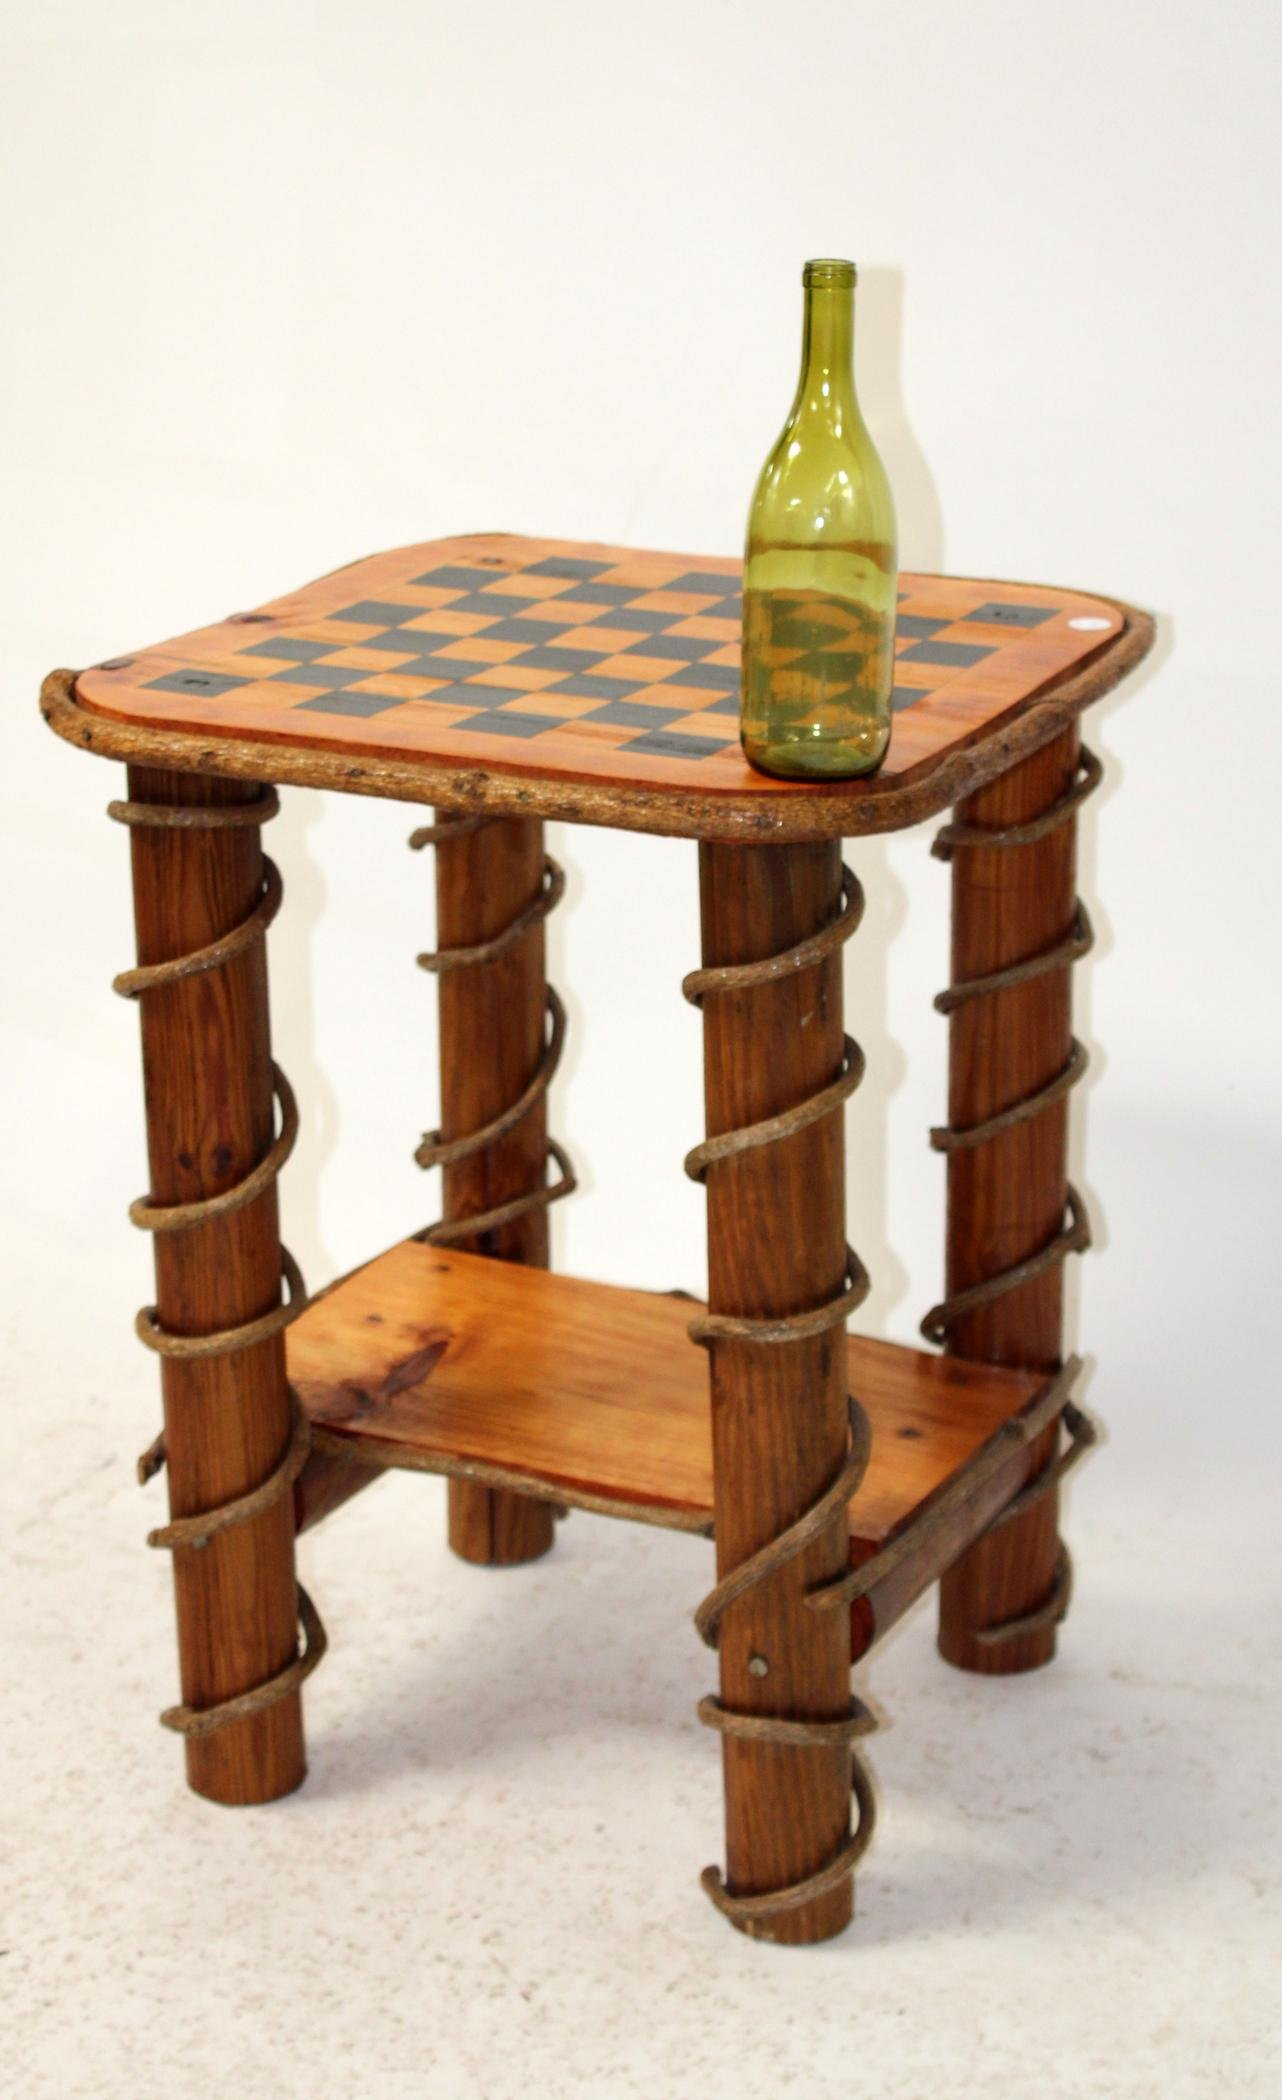 Log cabin style game table